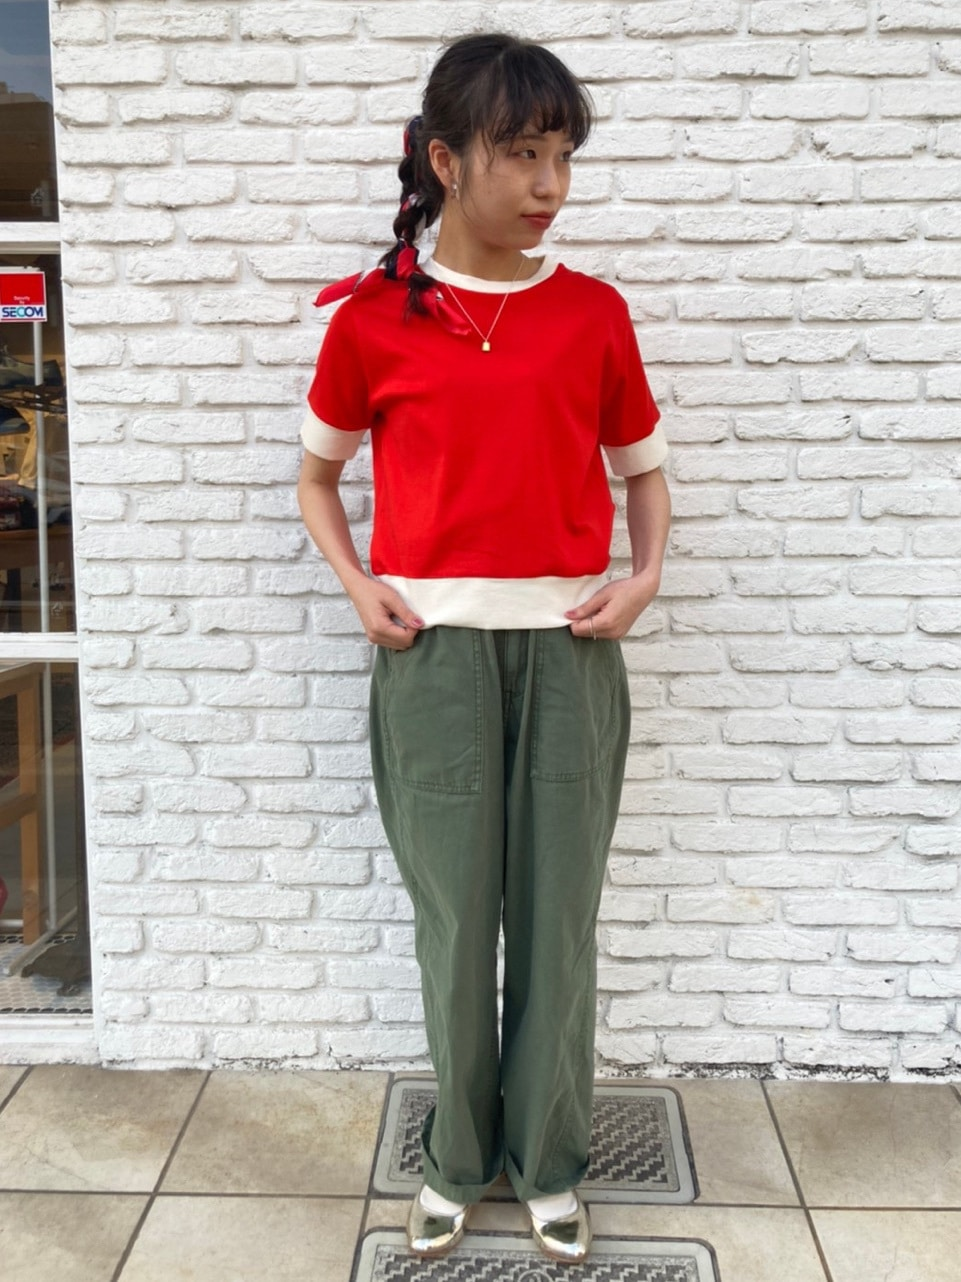 Dot and Stripes CHILD WOMAN 名古屋栄路面 身長:152cm 2021.04.30